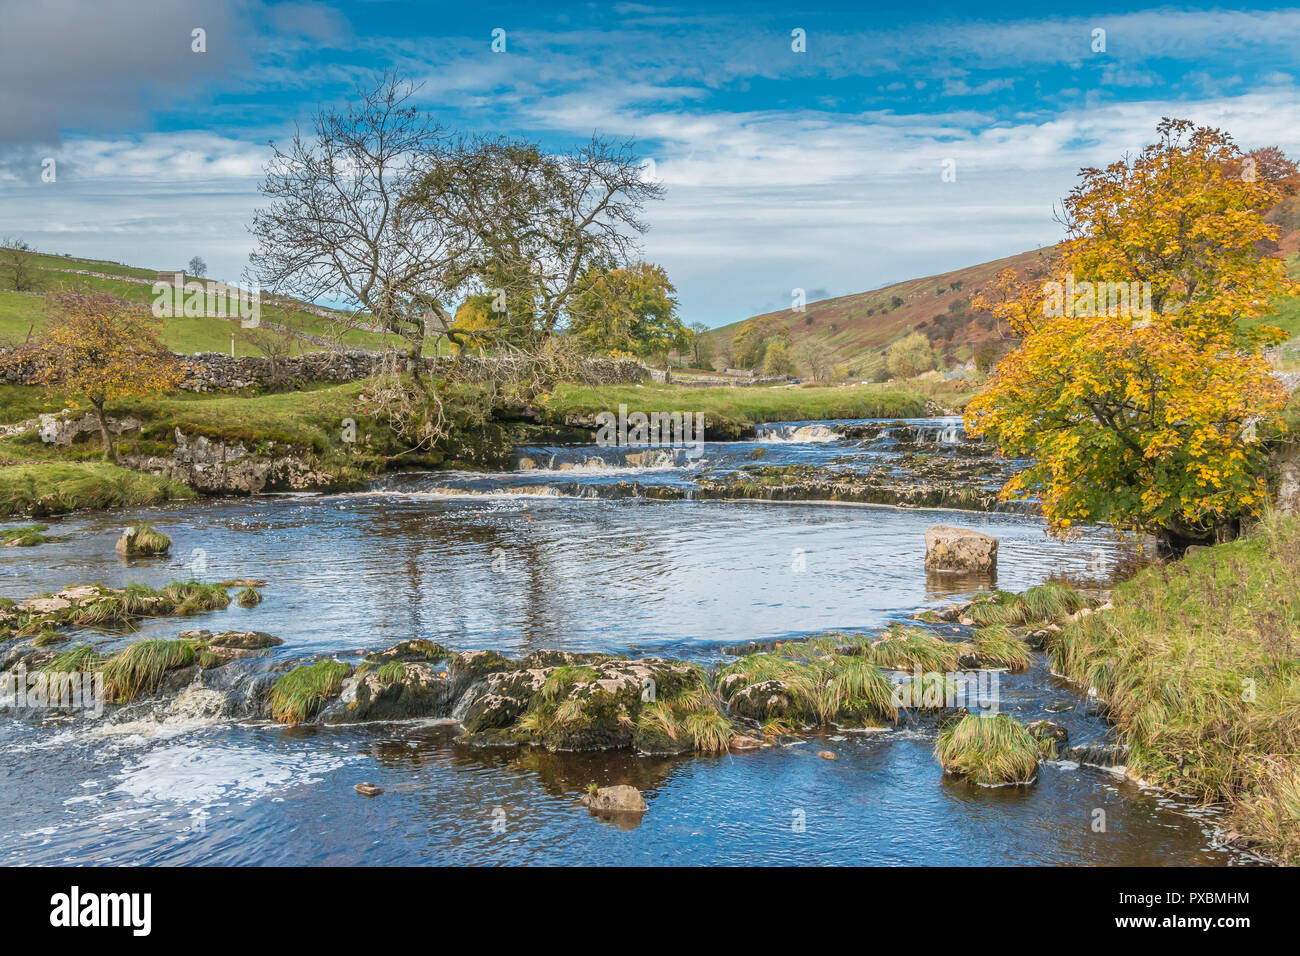 Yorkshire Dales National Park autumn landscape, the upper reaches of the river Wharfe, Langstrothdale, UK Stock Photo